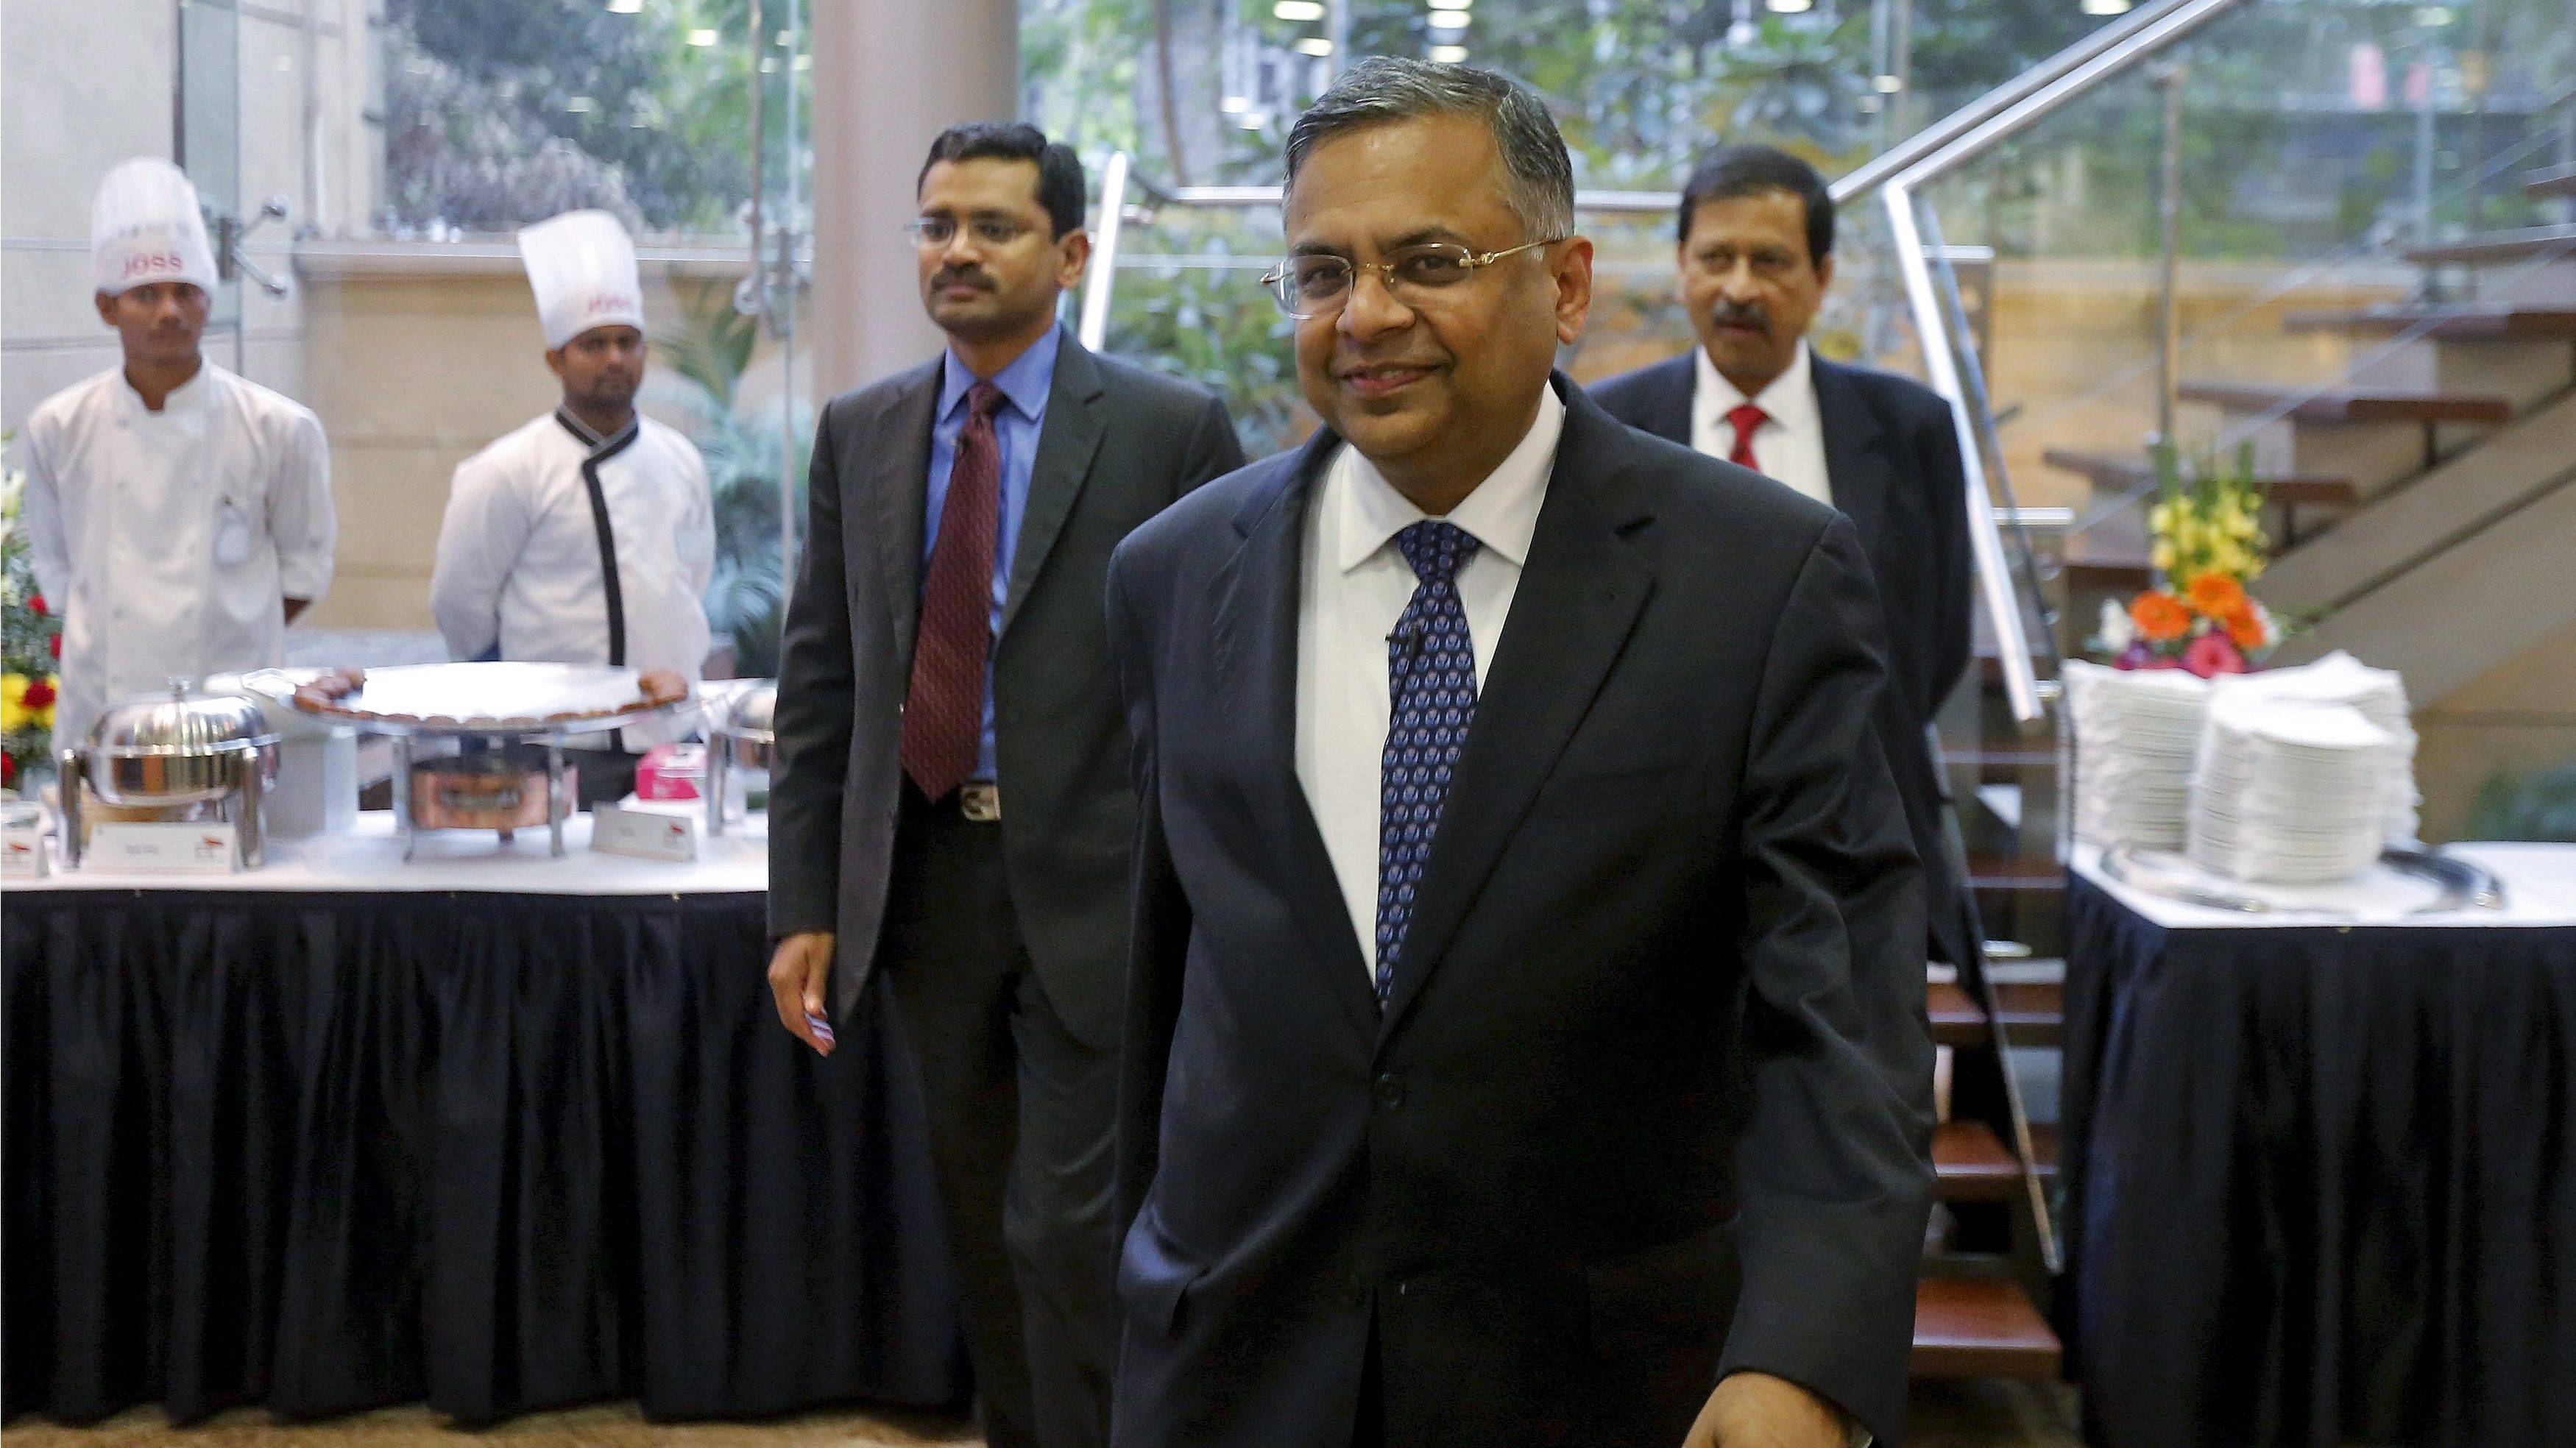 Tata Consultancy Services (TCS) Chief Executive N. Chandrasekaran arrives for a news conference in Mumbai, India, January 12, 2016. Tata Consultancy Services Ltd is eyeing acquisitions in Europe as well as healthcare technology companies in the U.S. to boost growth, Chandrasekaran said on Tuesday, as India's largest IT services exporter post a 12-percent rise in quarterly profit.